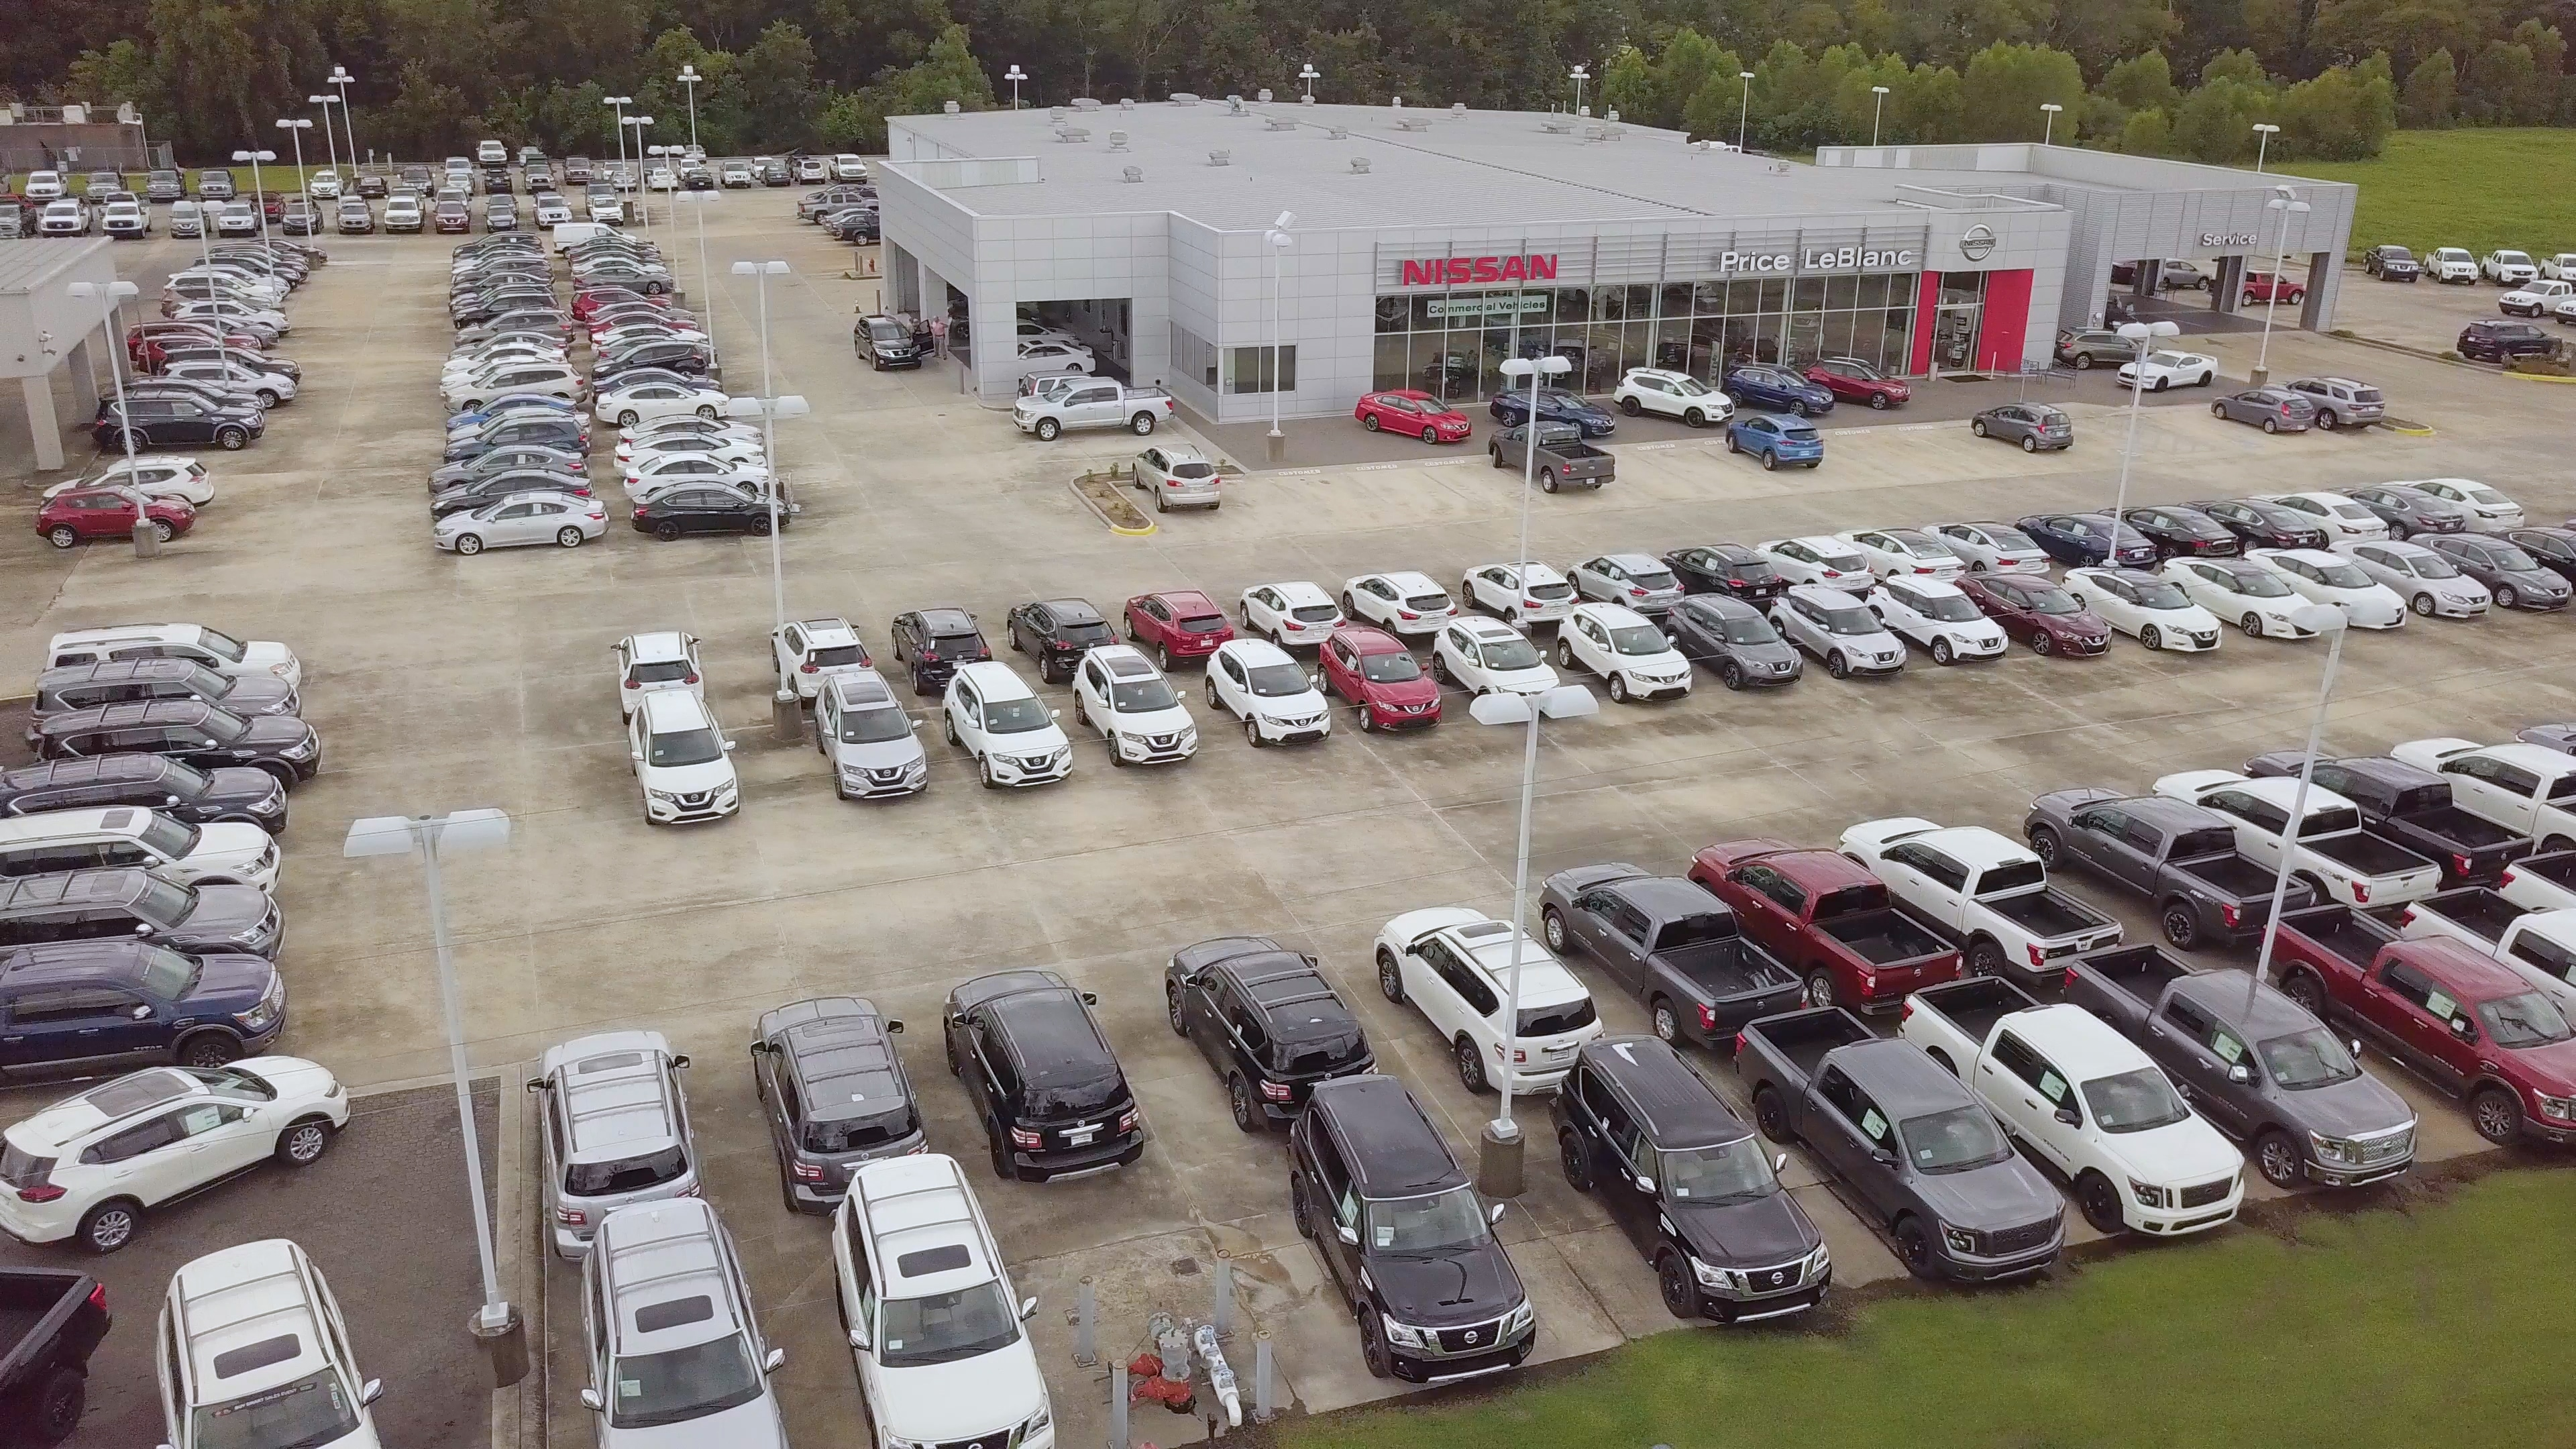 Why Buy A Used Car From Price Leblanc Nissan Near Baton Rouge